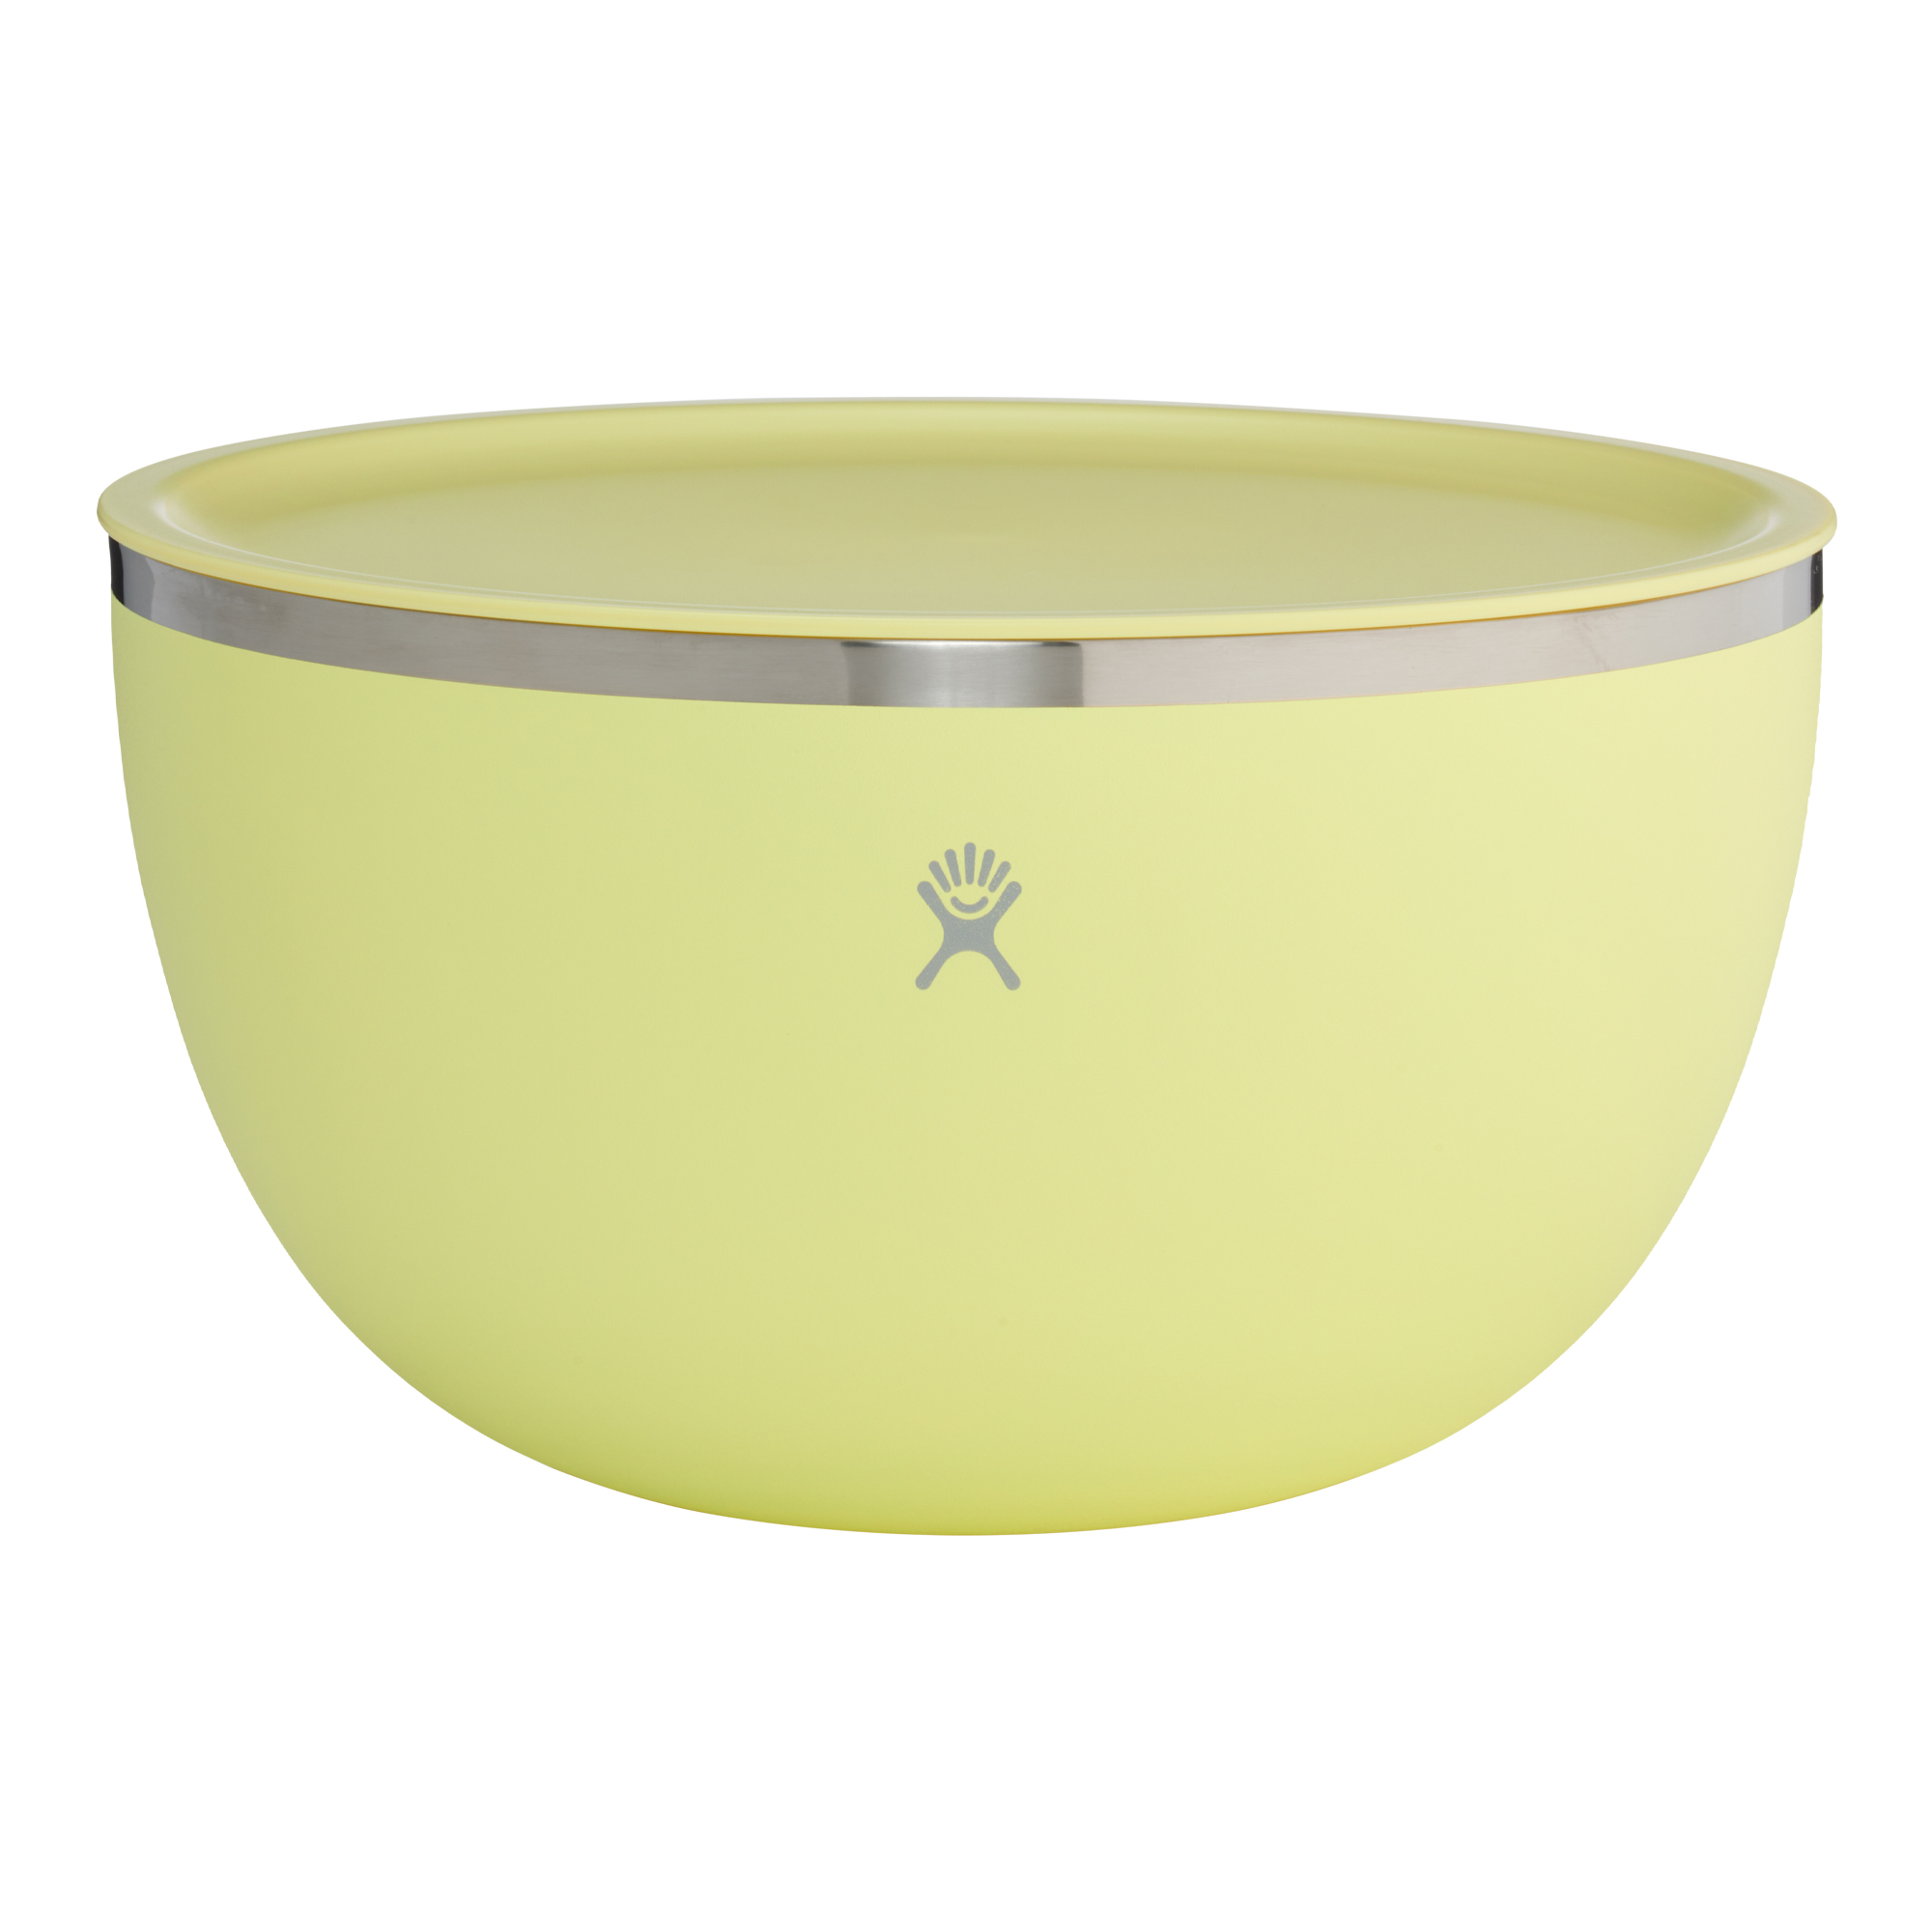 Hydro Flask - 5 Quart Bowl with Lid - yellow bowl with lid on a white background